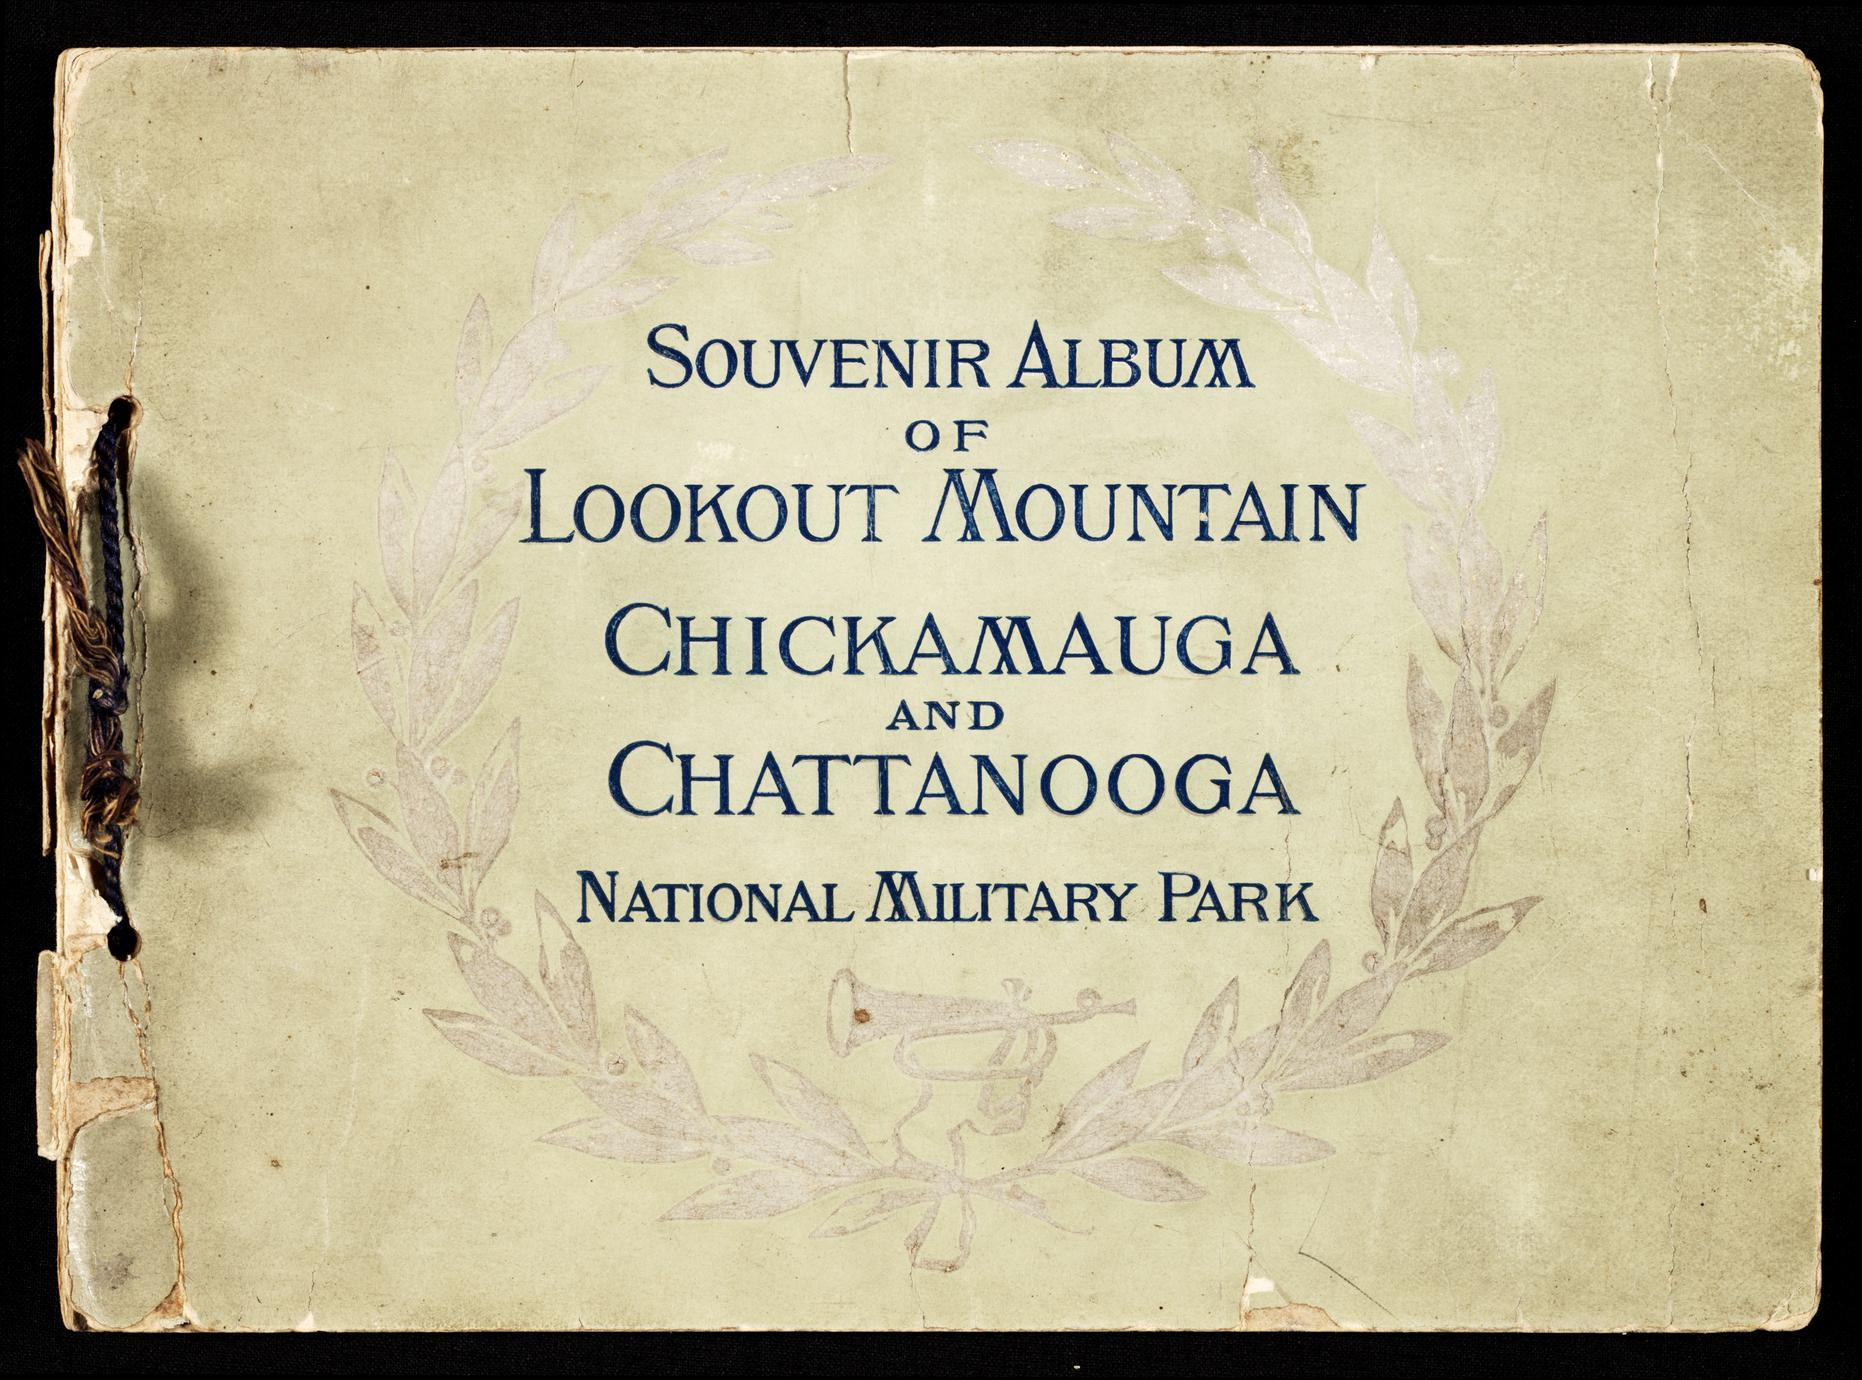 Selected views : Chattanooga, Lookout Mountain, Chickamauga, and Chattanooga National Military Park. National Cemetery, Mission Ridge